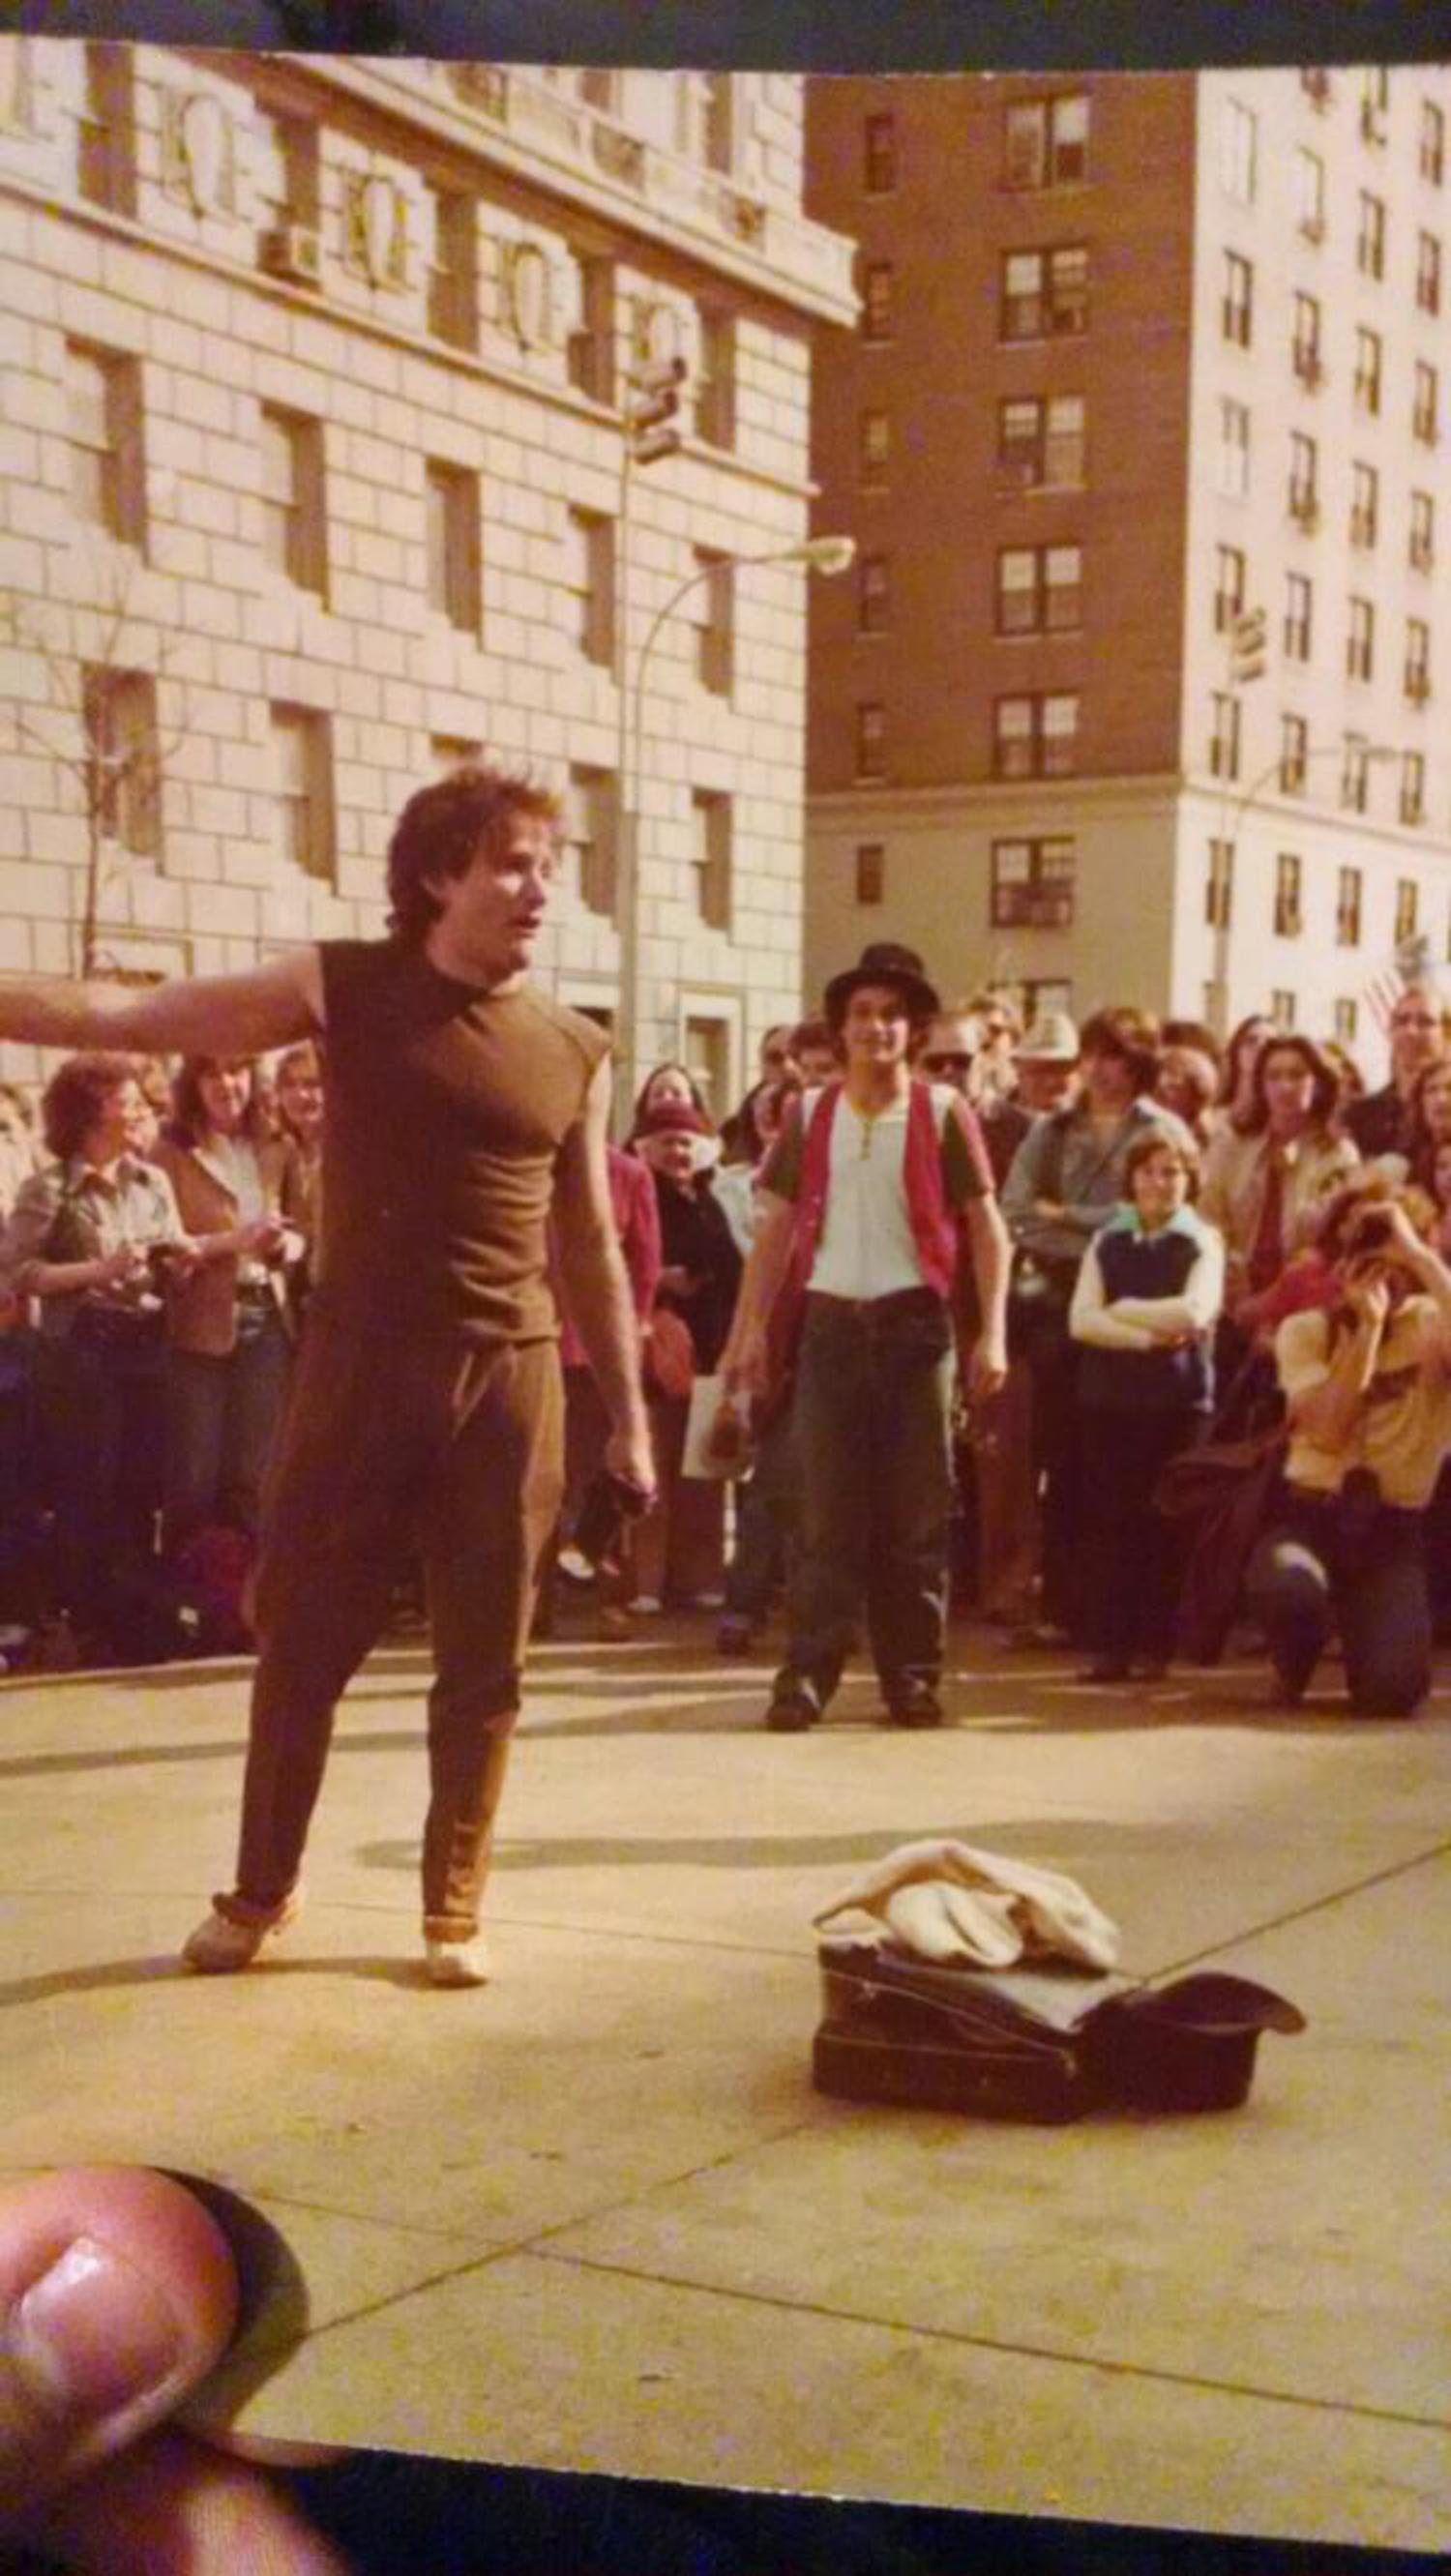 Robin Williams Street Performance in New York City, 1979